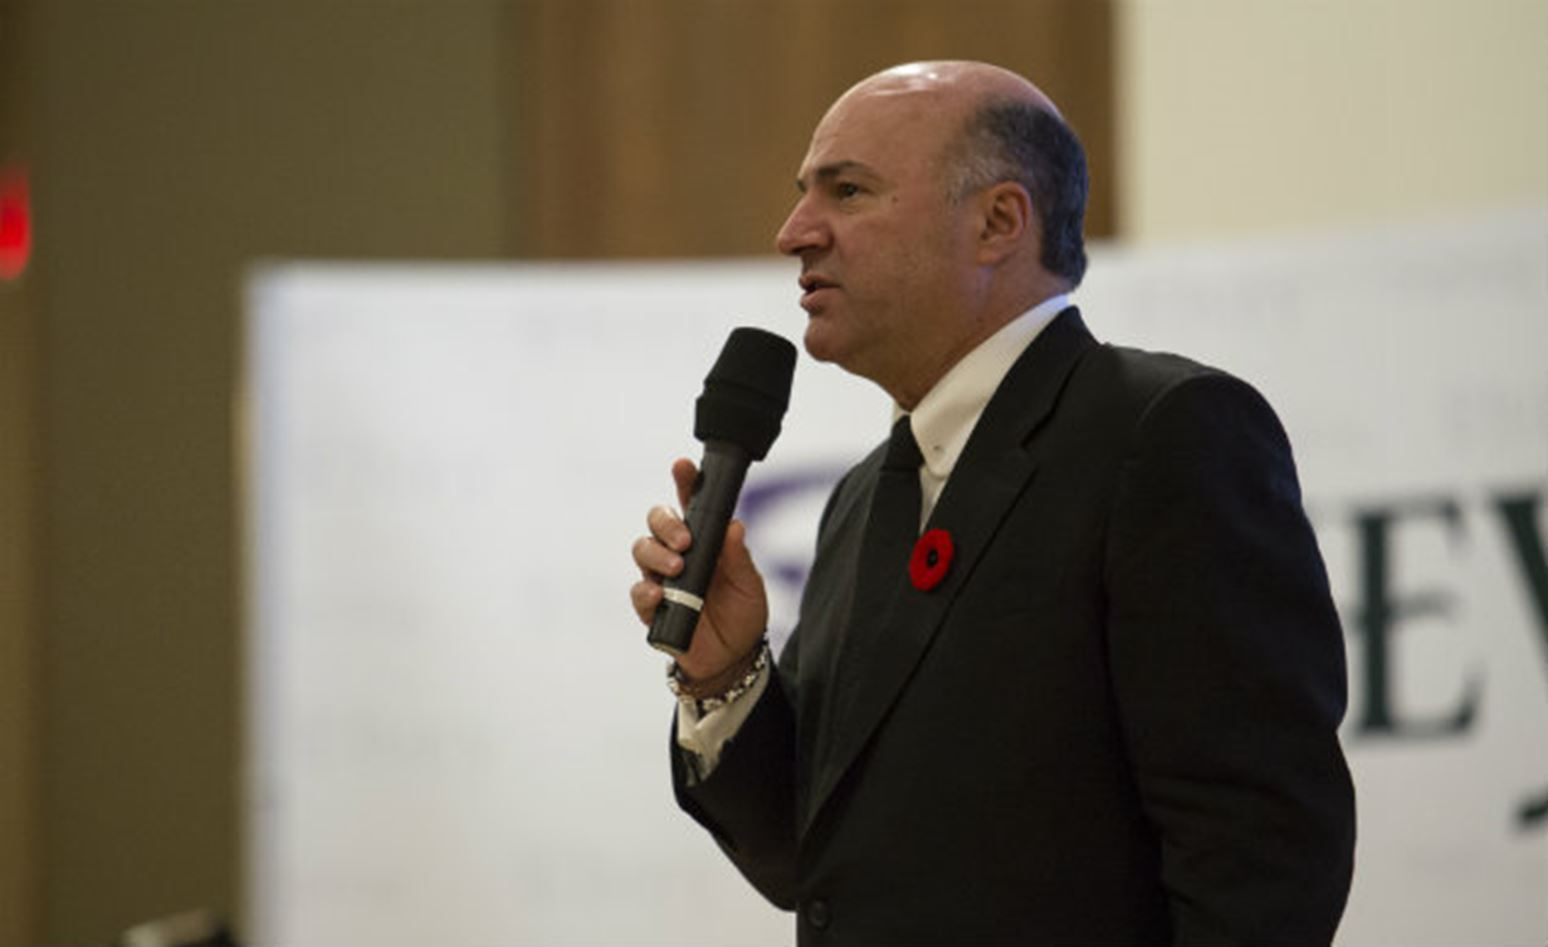 Kevin O'Leary shares entrepreneurial lessons from Shark Tank